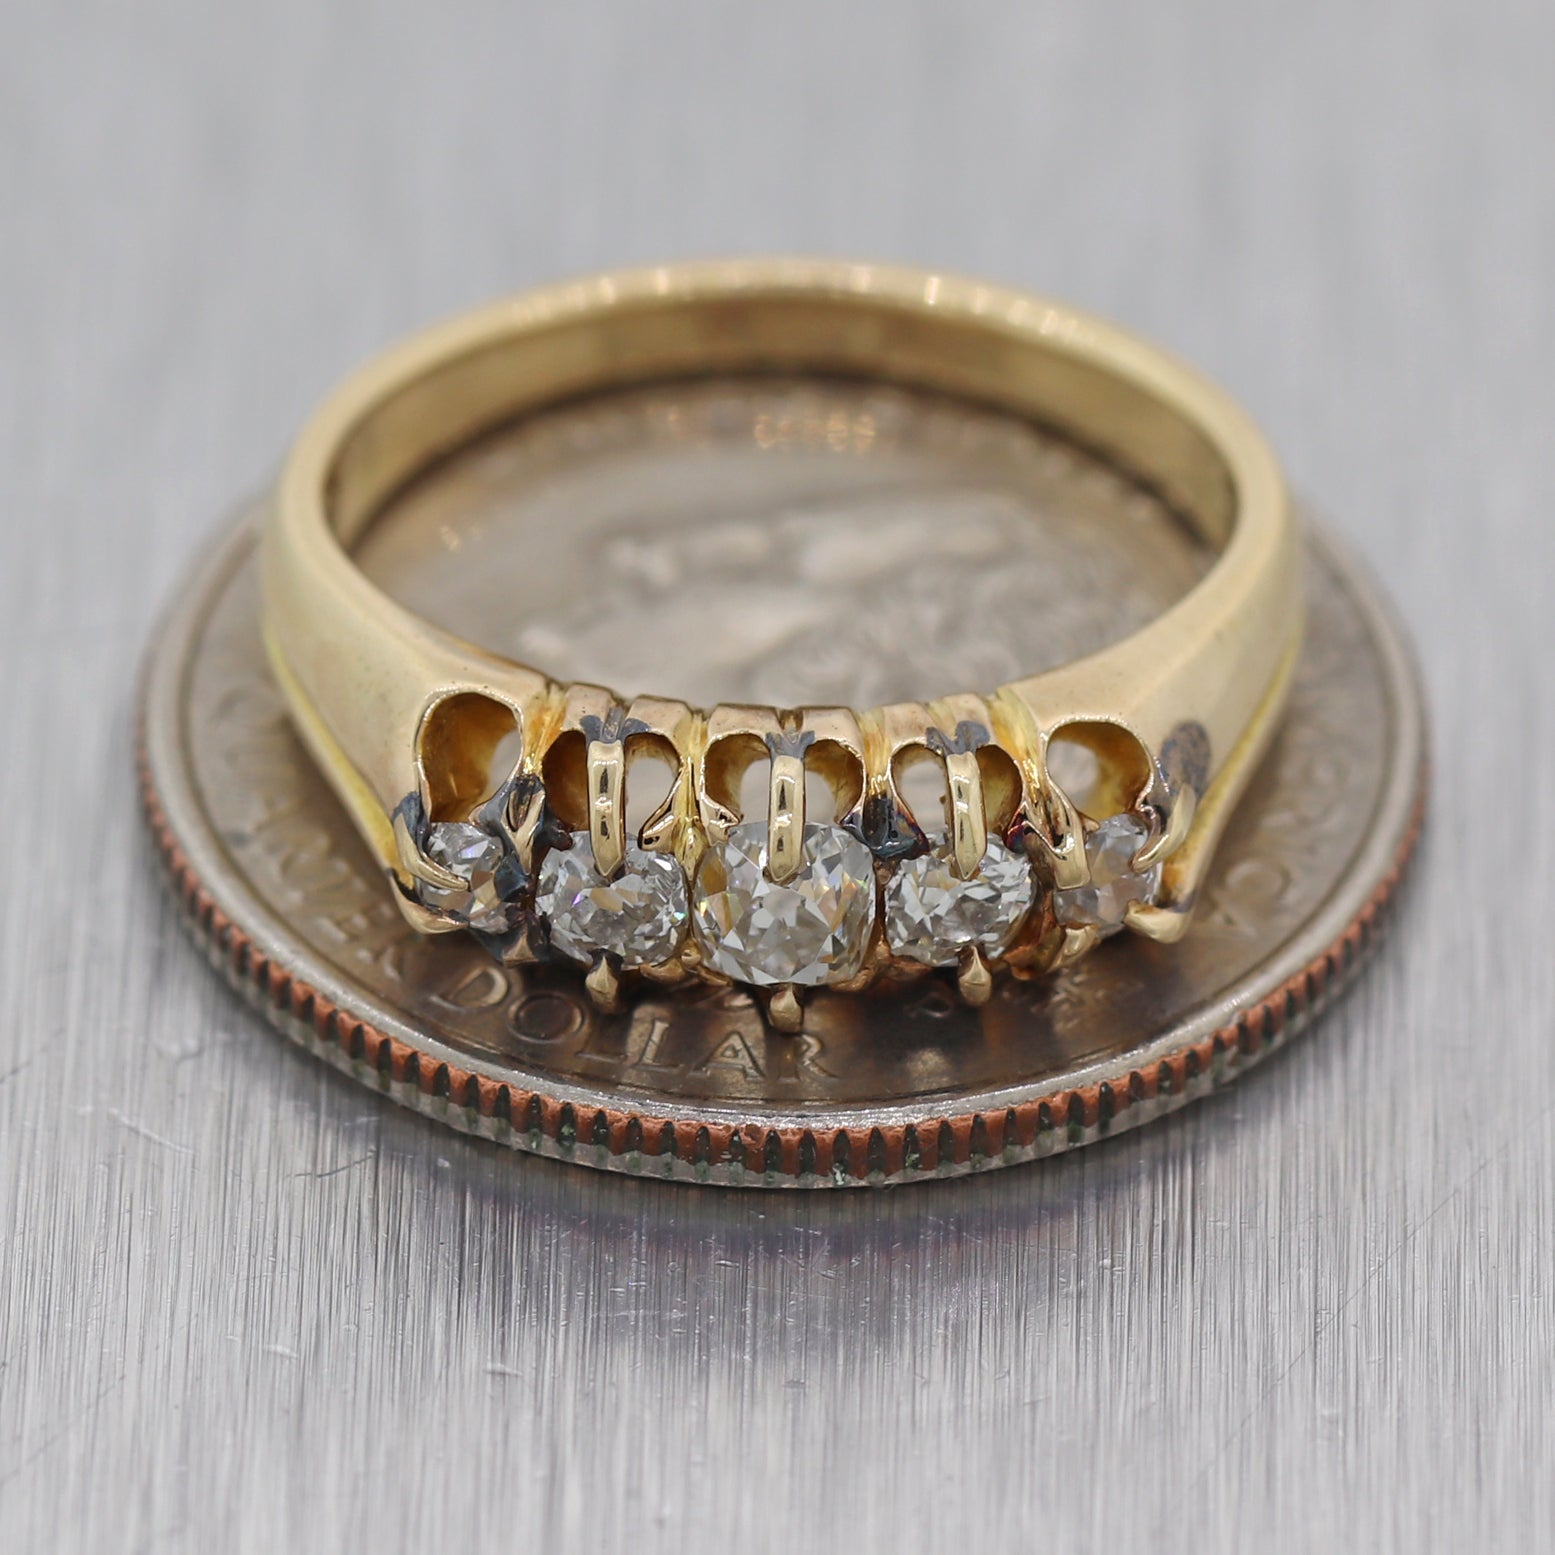 1850's Antique Victorian 14k Yellow Gold 0.50ctw Diamond Wedding Band Ring